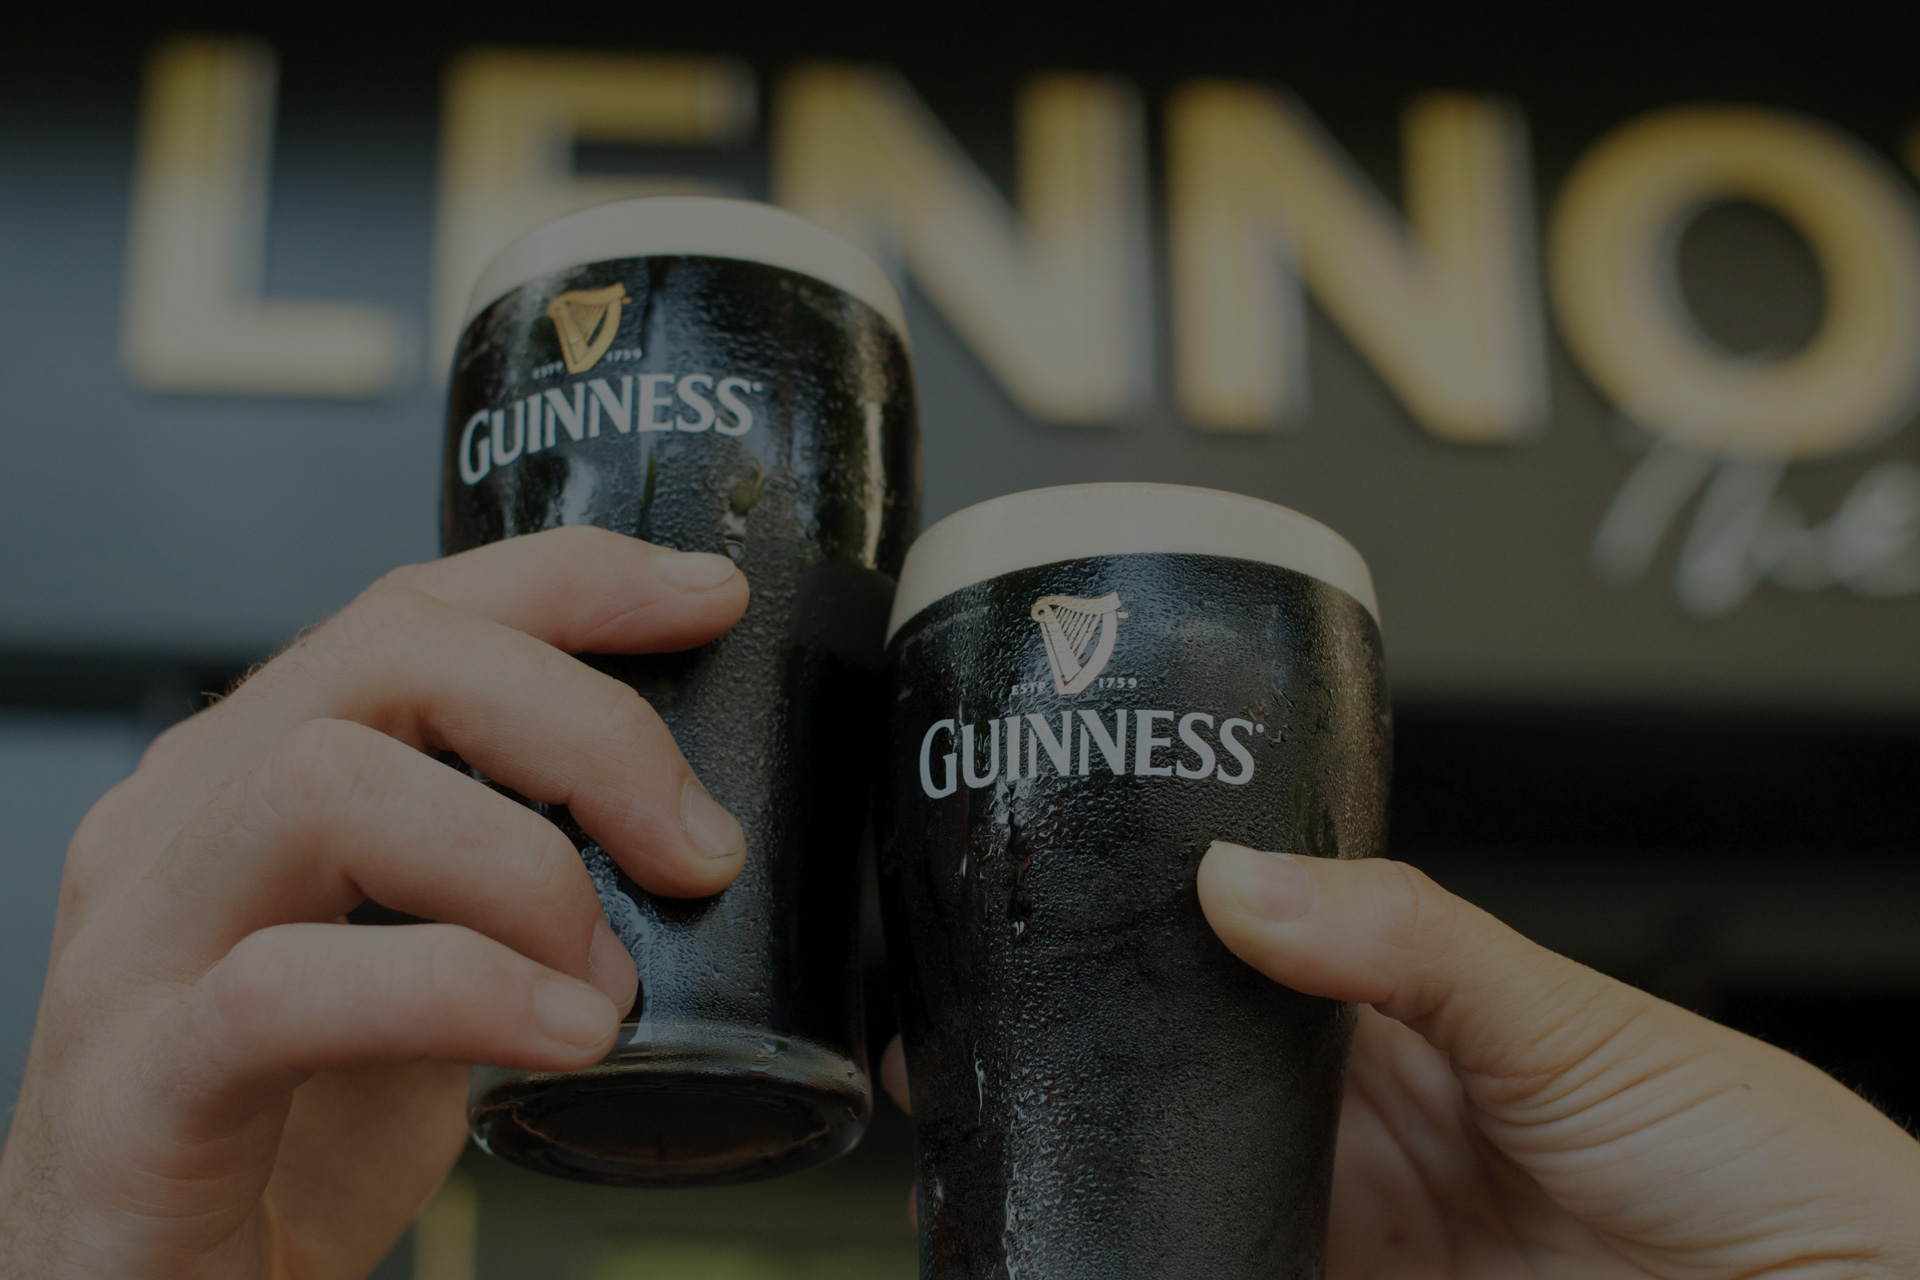 lennox-the-pub-good-moments-guinness